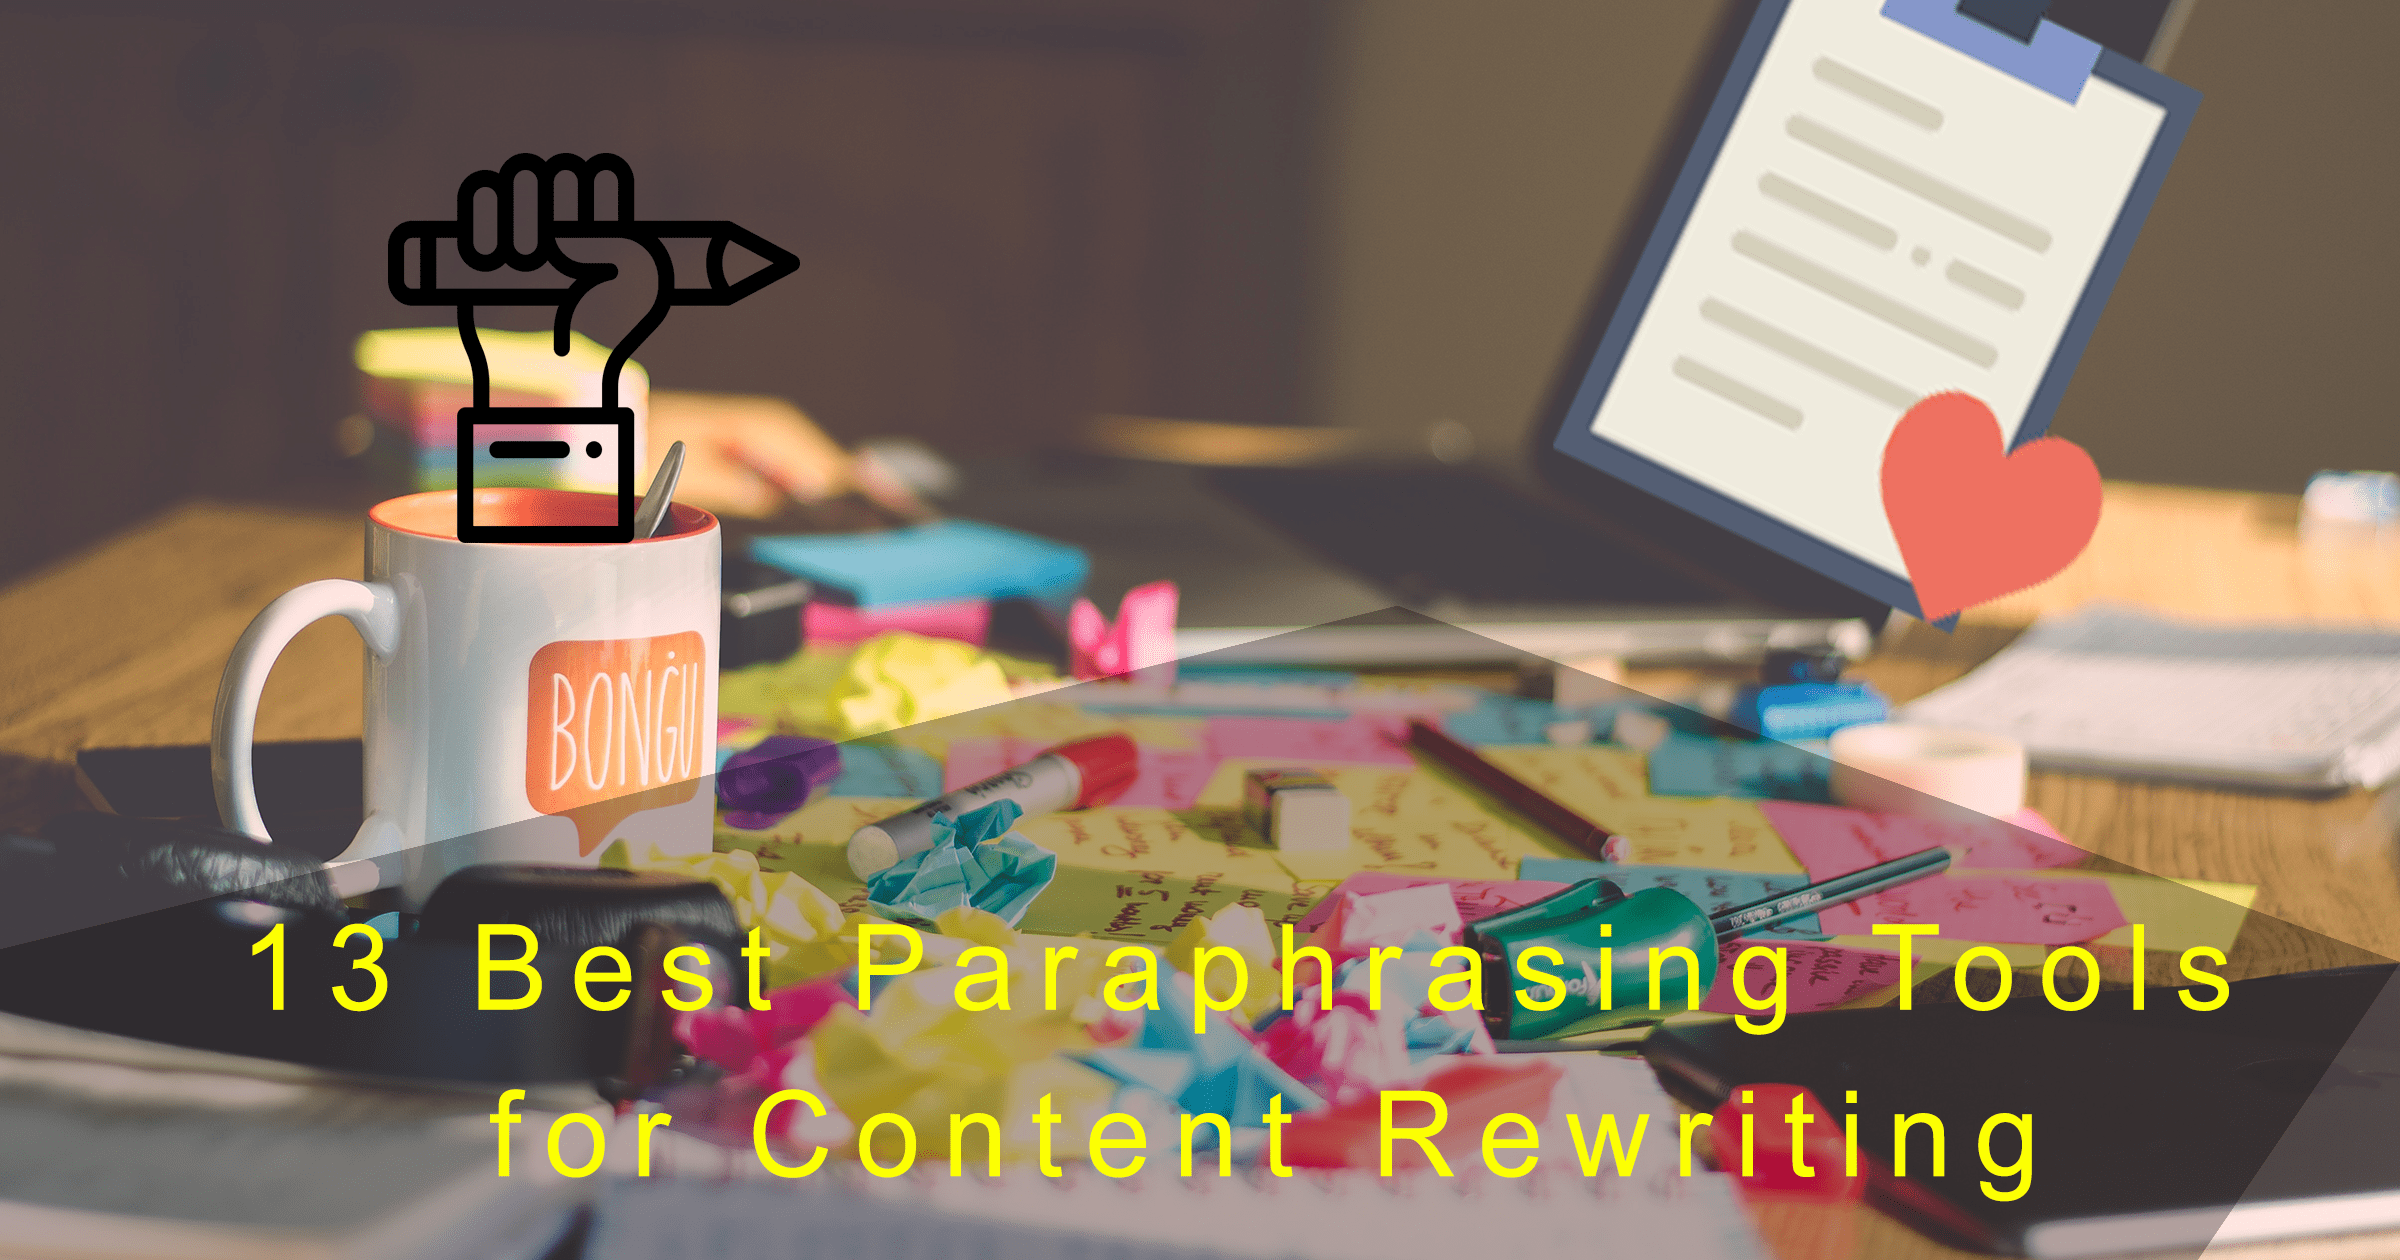 Best Paraphrasing Tool List For Content Rewriting Market Me Good Without Plagiarizing